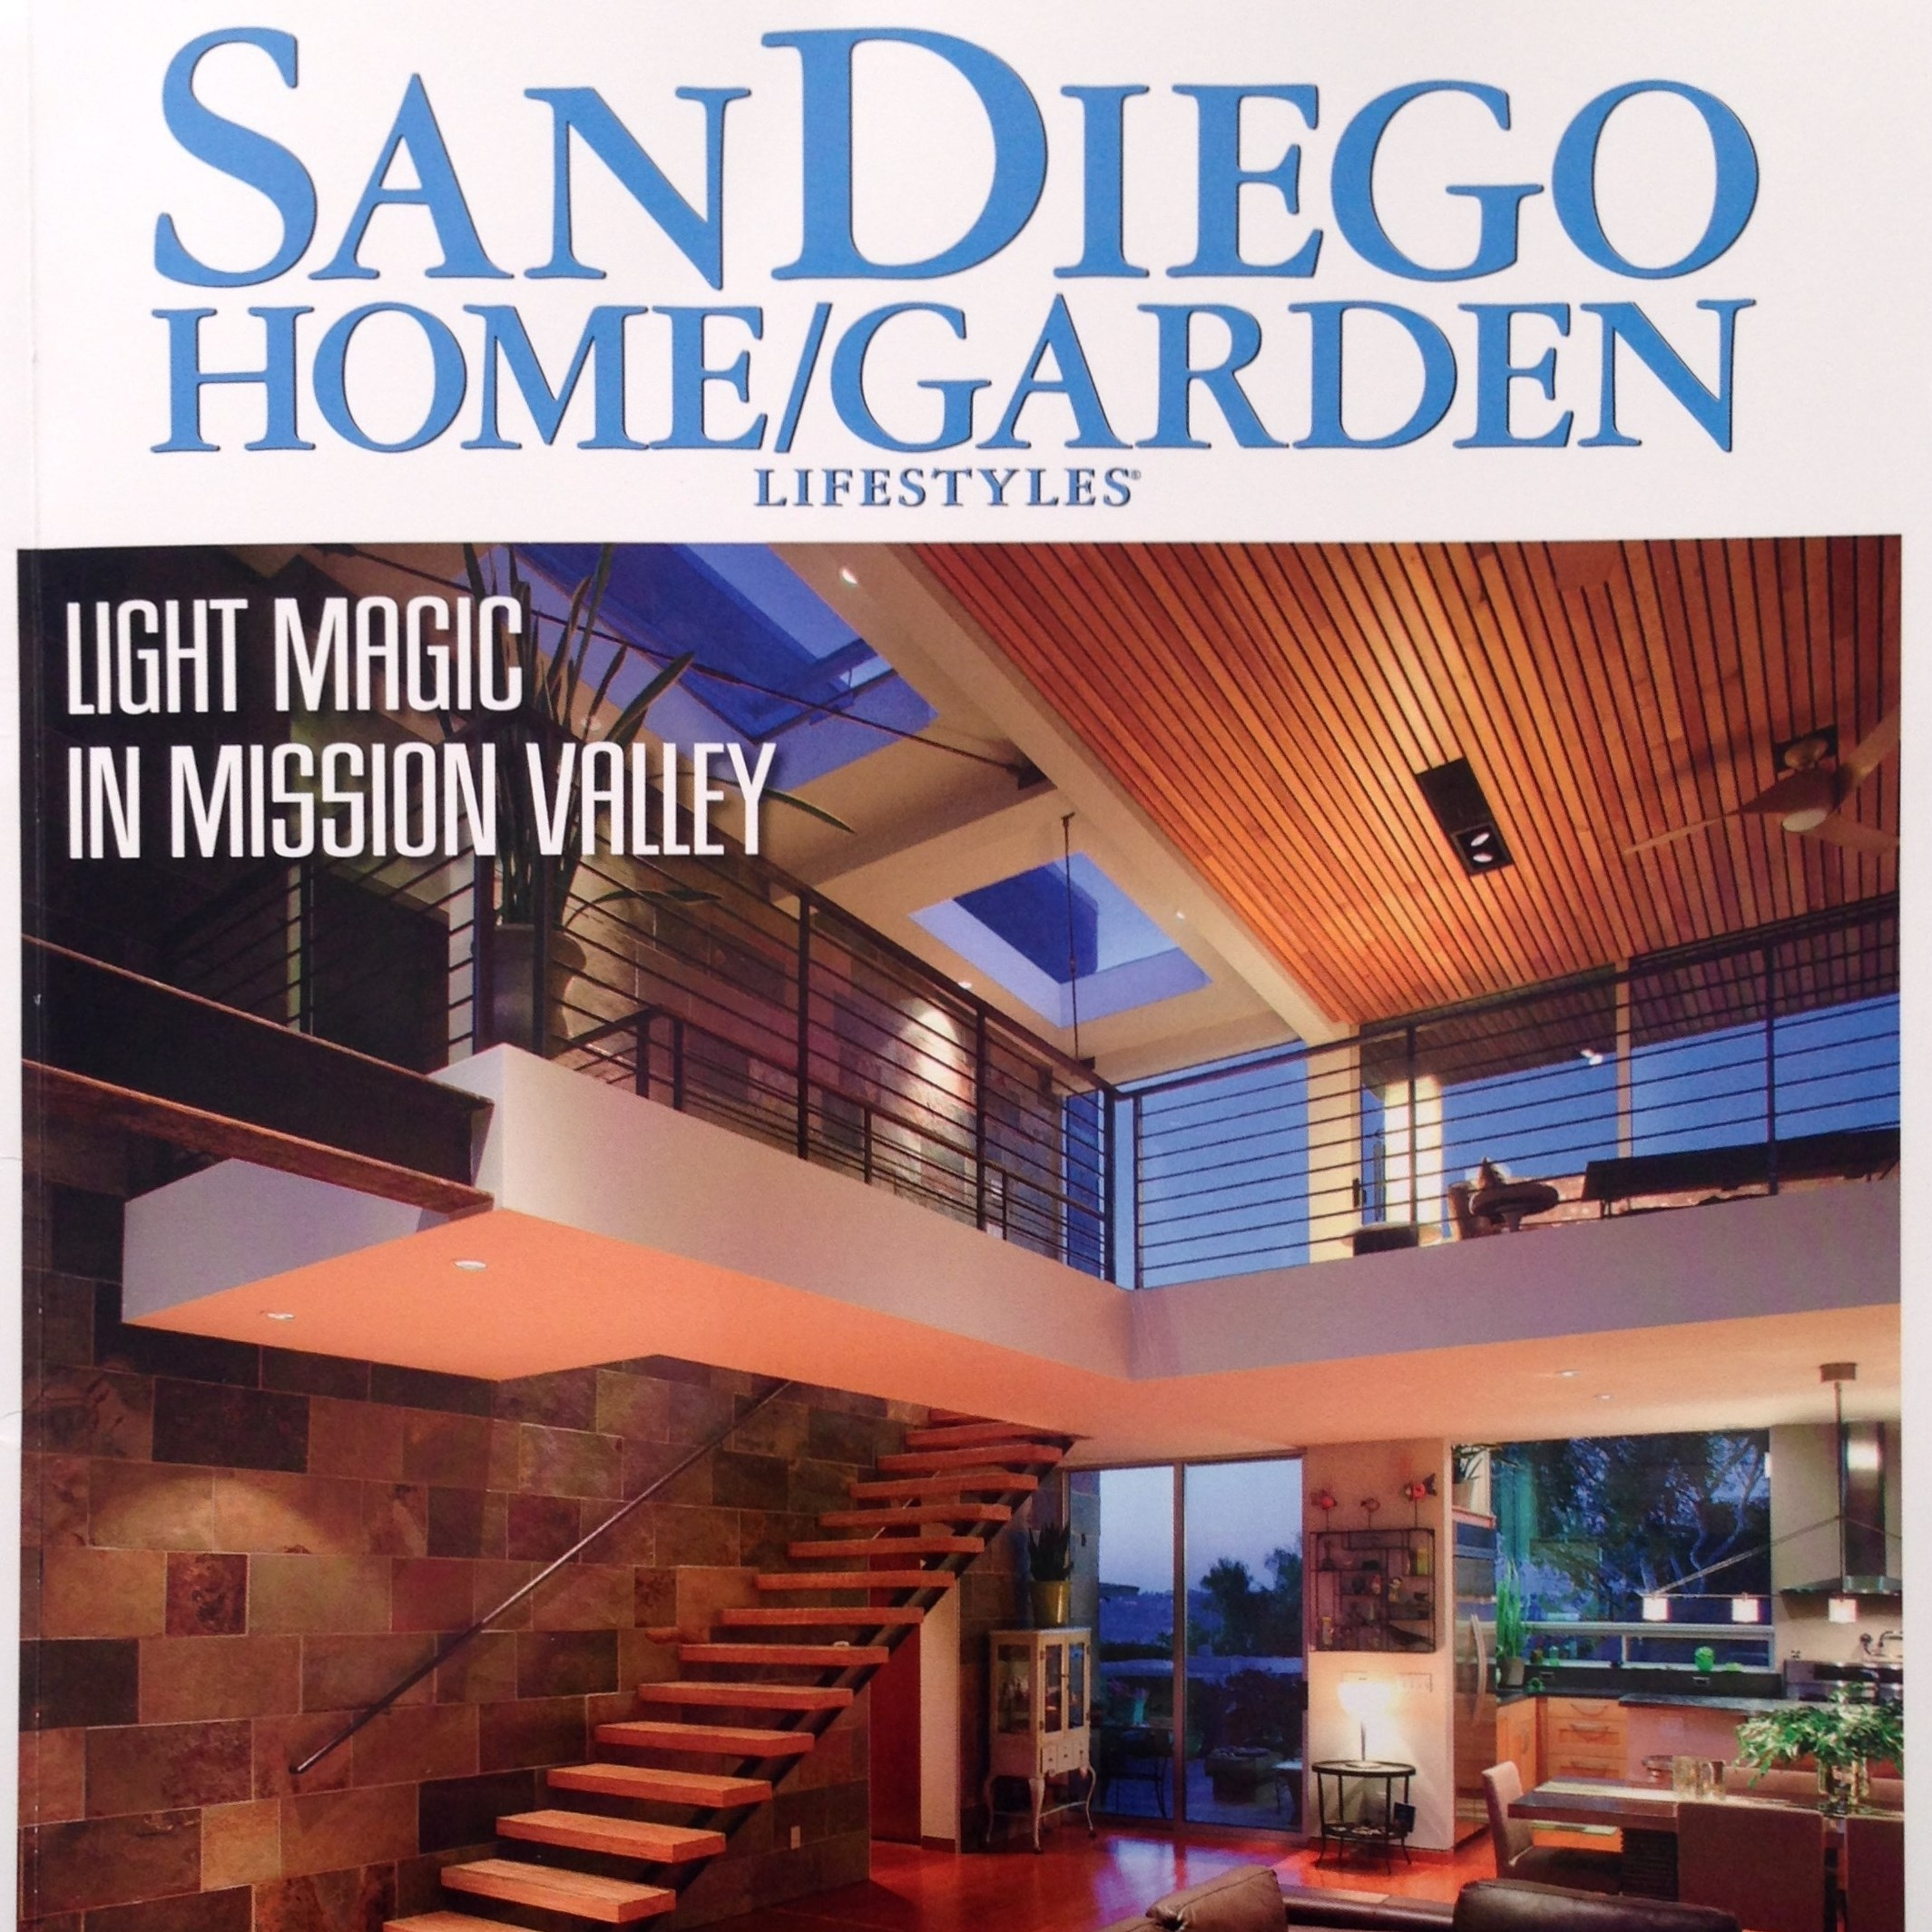 Published in  San Diego Home/Garden  - November 2013